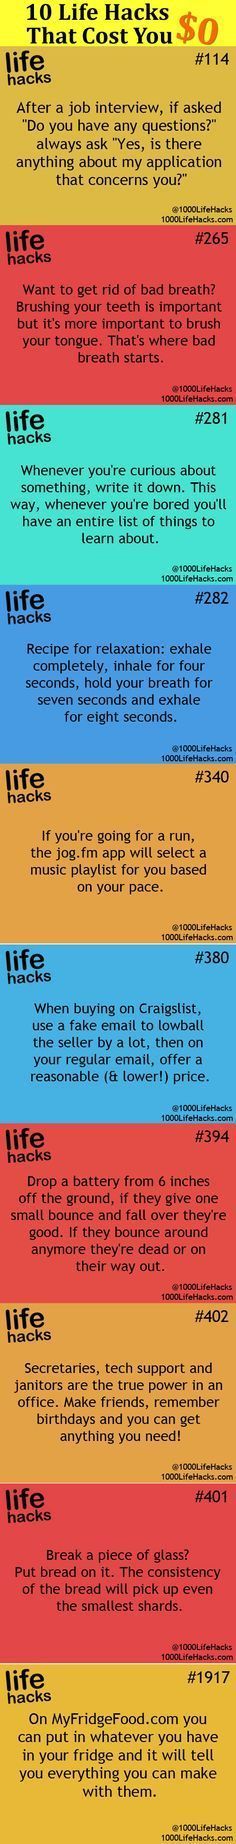 Those 10 selected life hacks include some clever tips to solve bothersome daily…